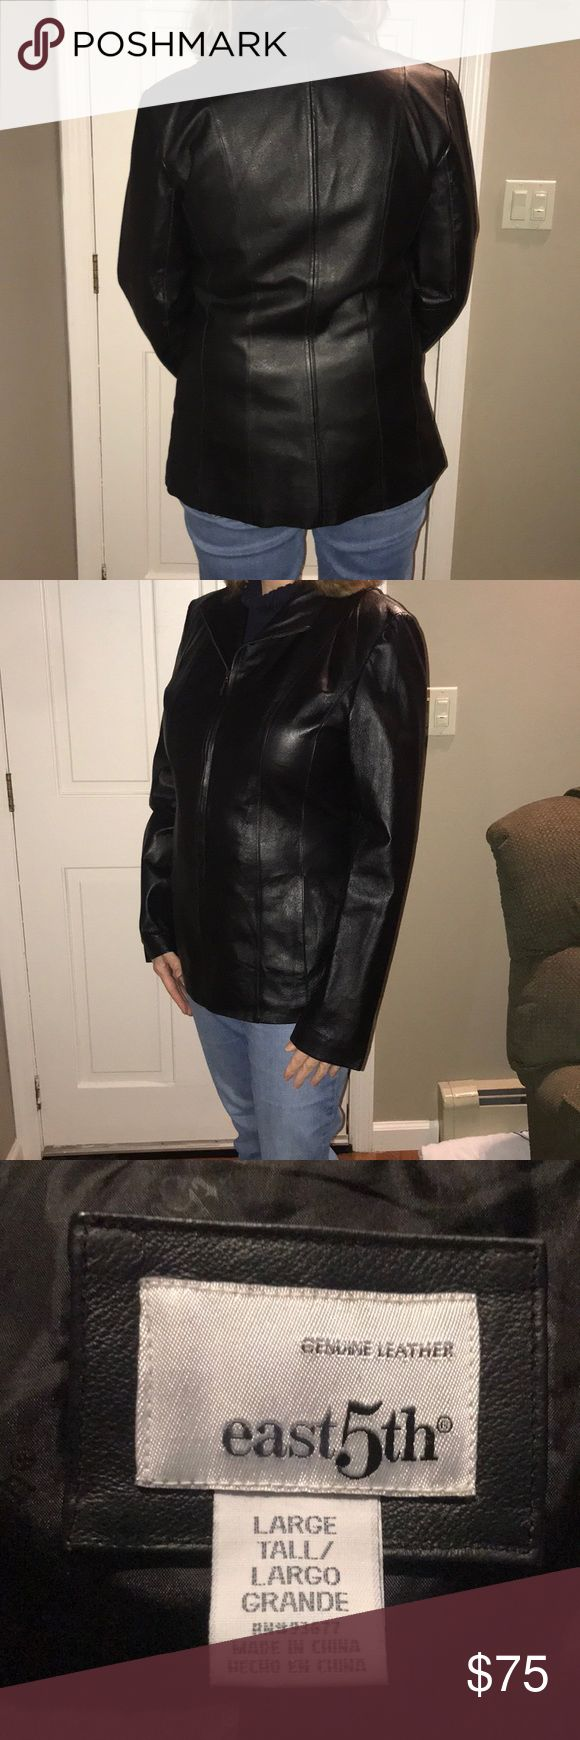 Women's leather jacket Ladies large tall. Black leather jacket. Like new. Zipper front. Model is 5 foot 9 and usually wears a women's medium top. No trades. Jackets & Coats